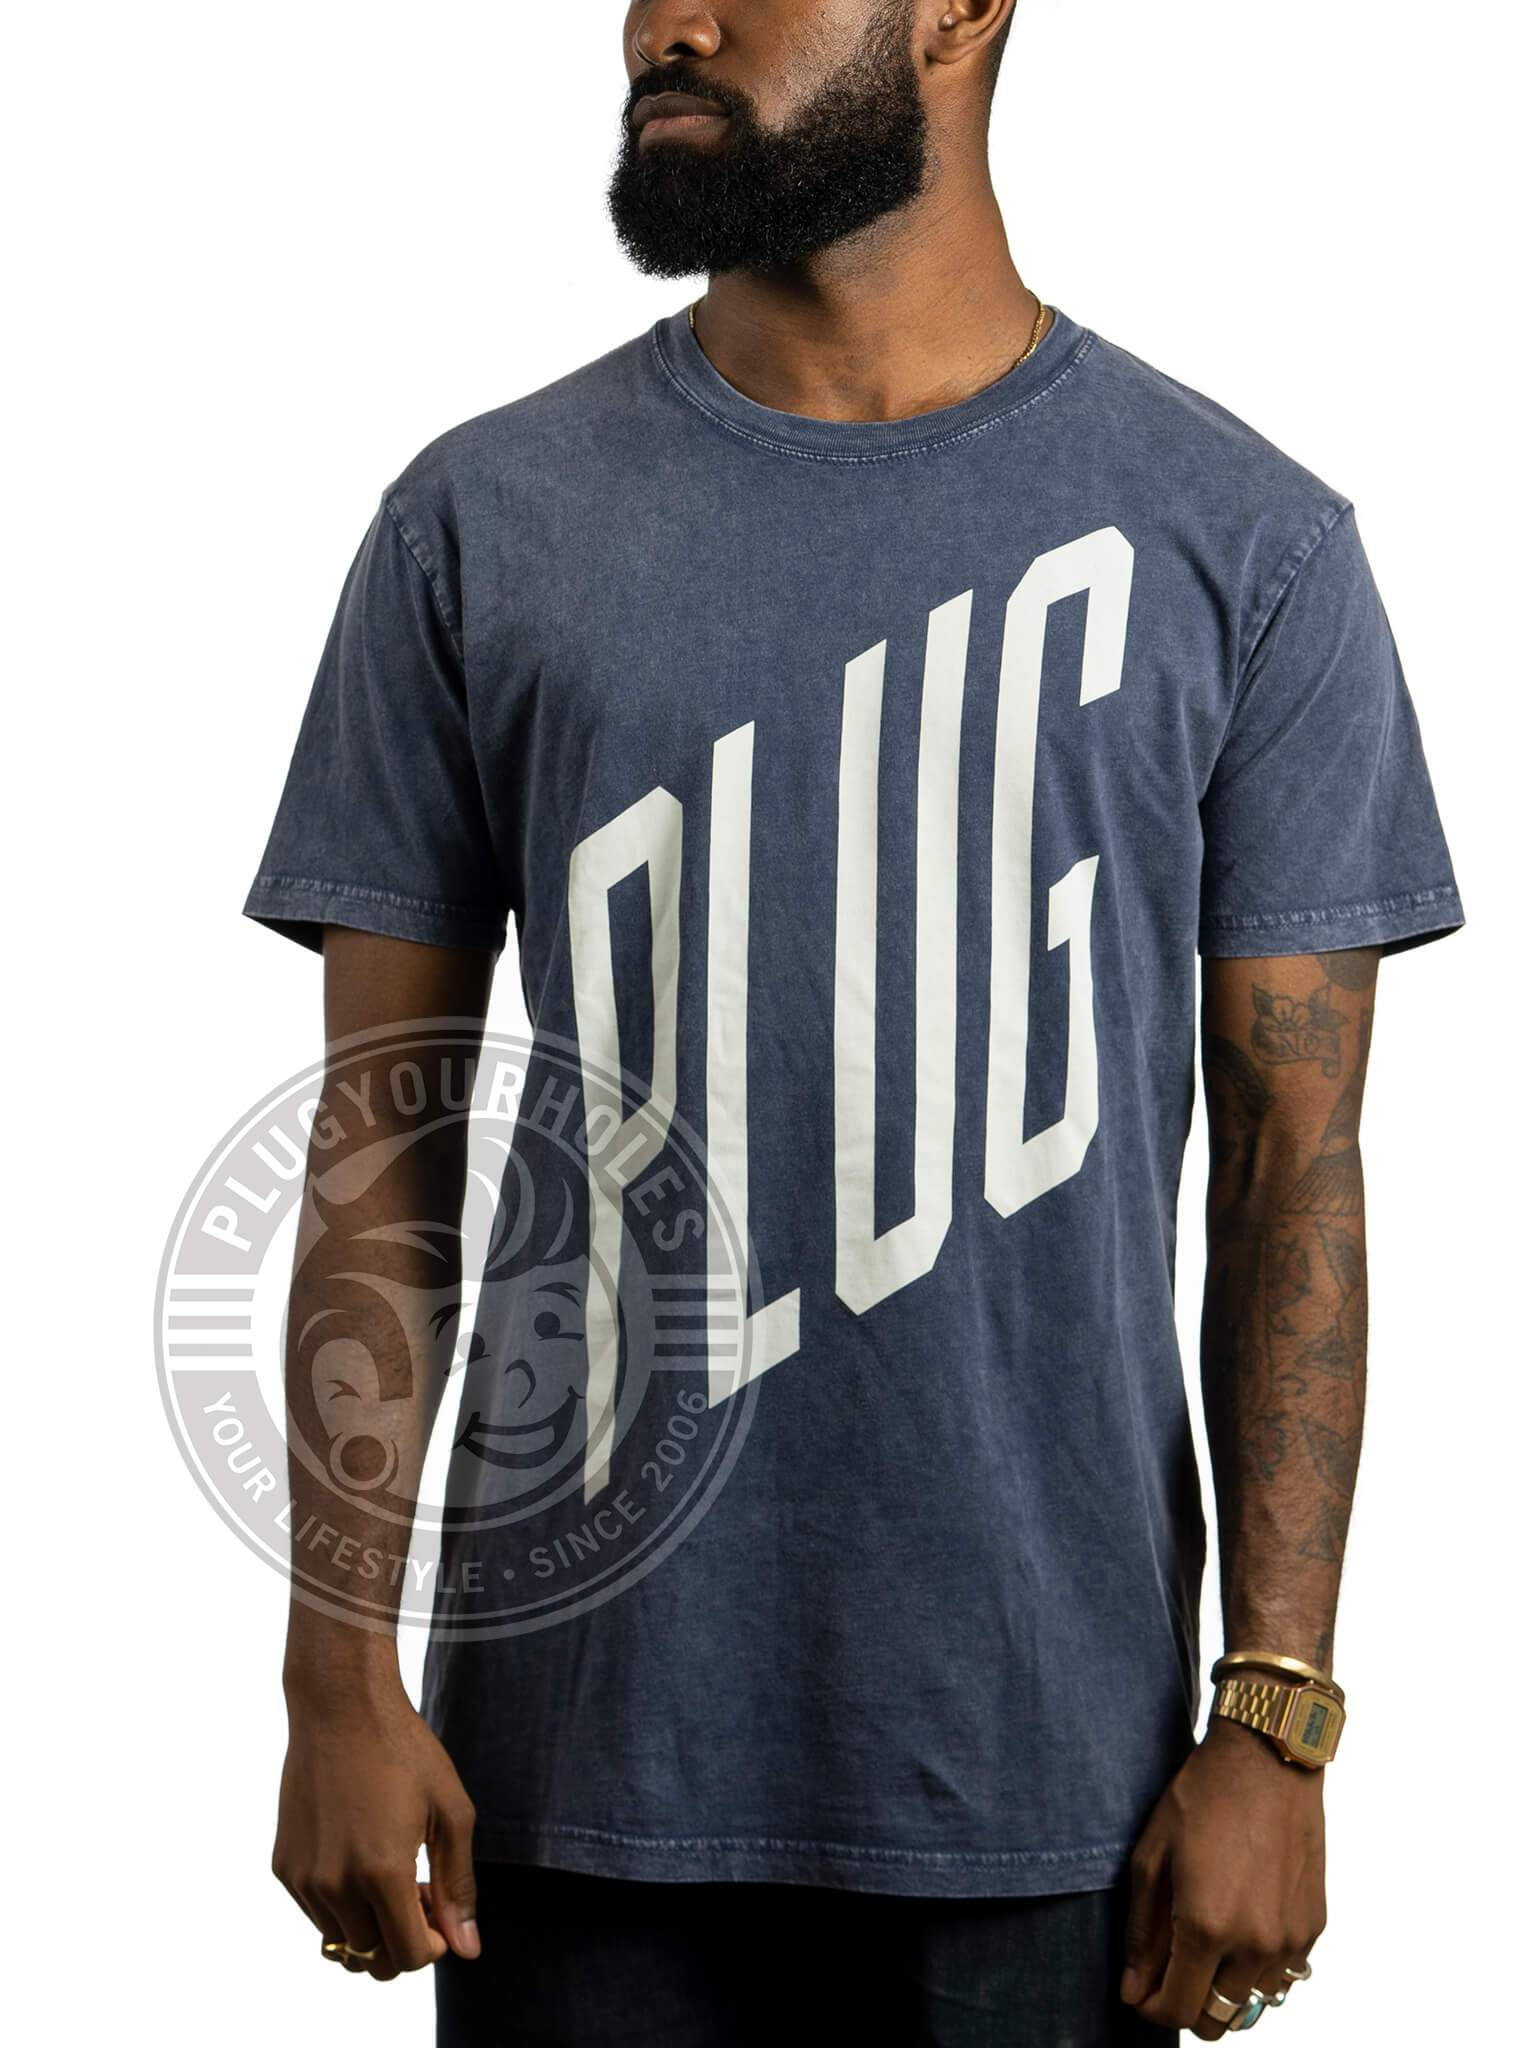 Cast Iron Plug - Blue - Acid Wash Unisex Tee